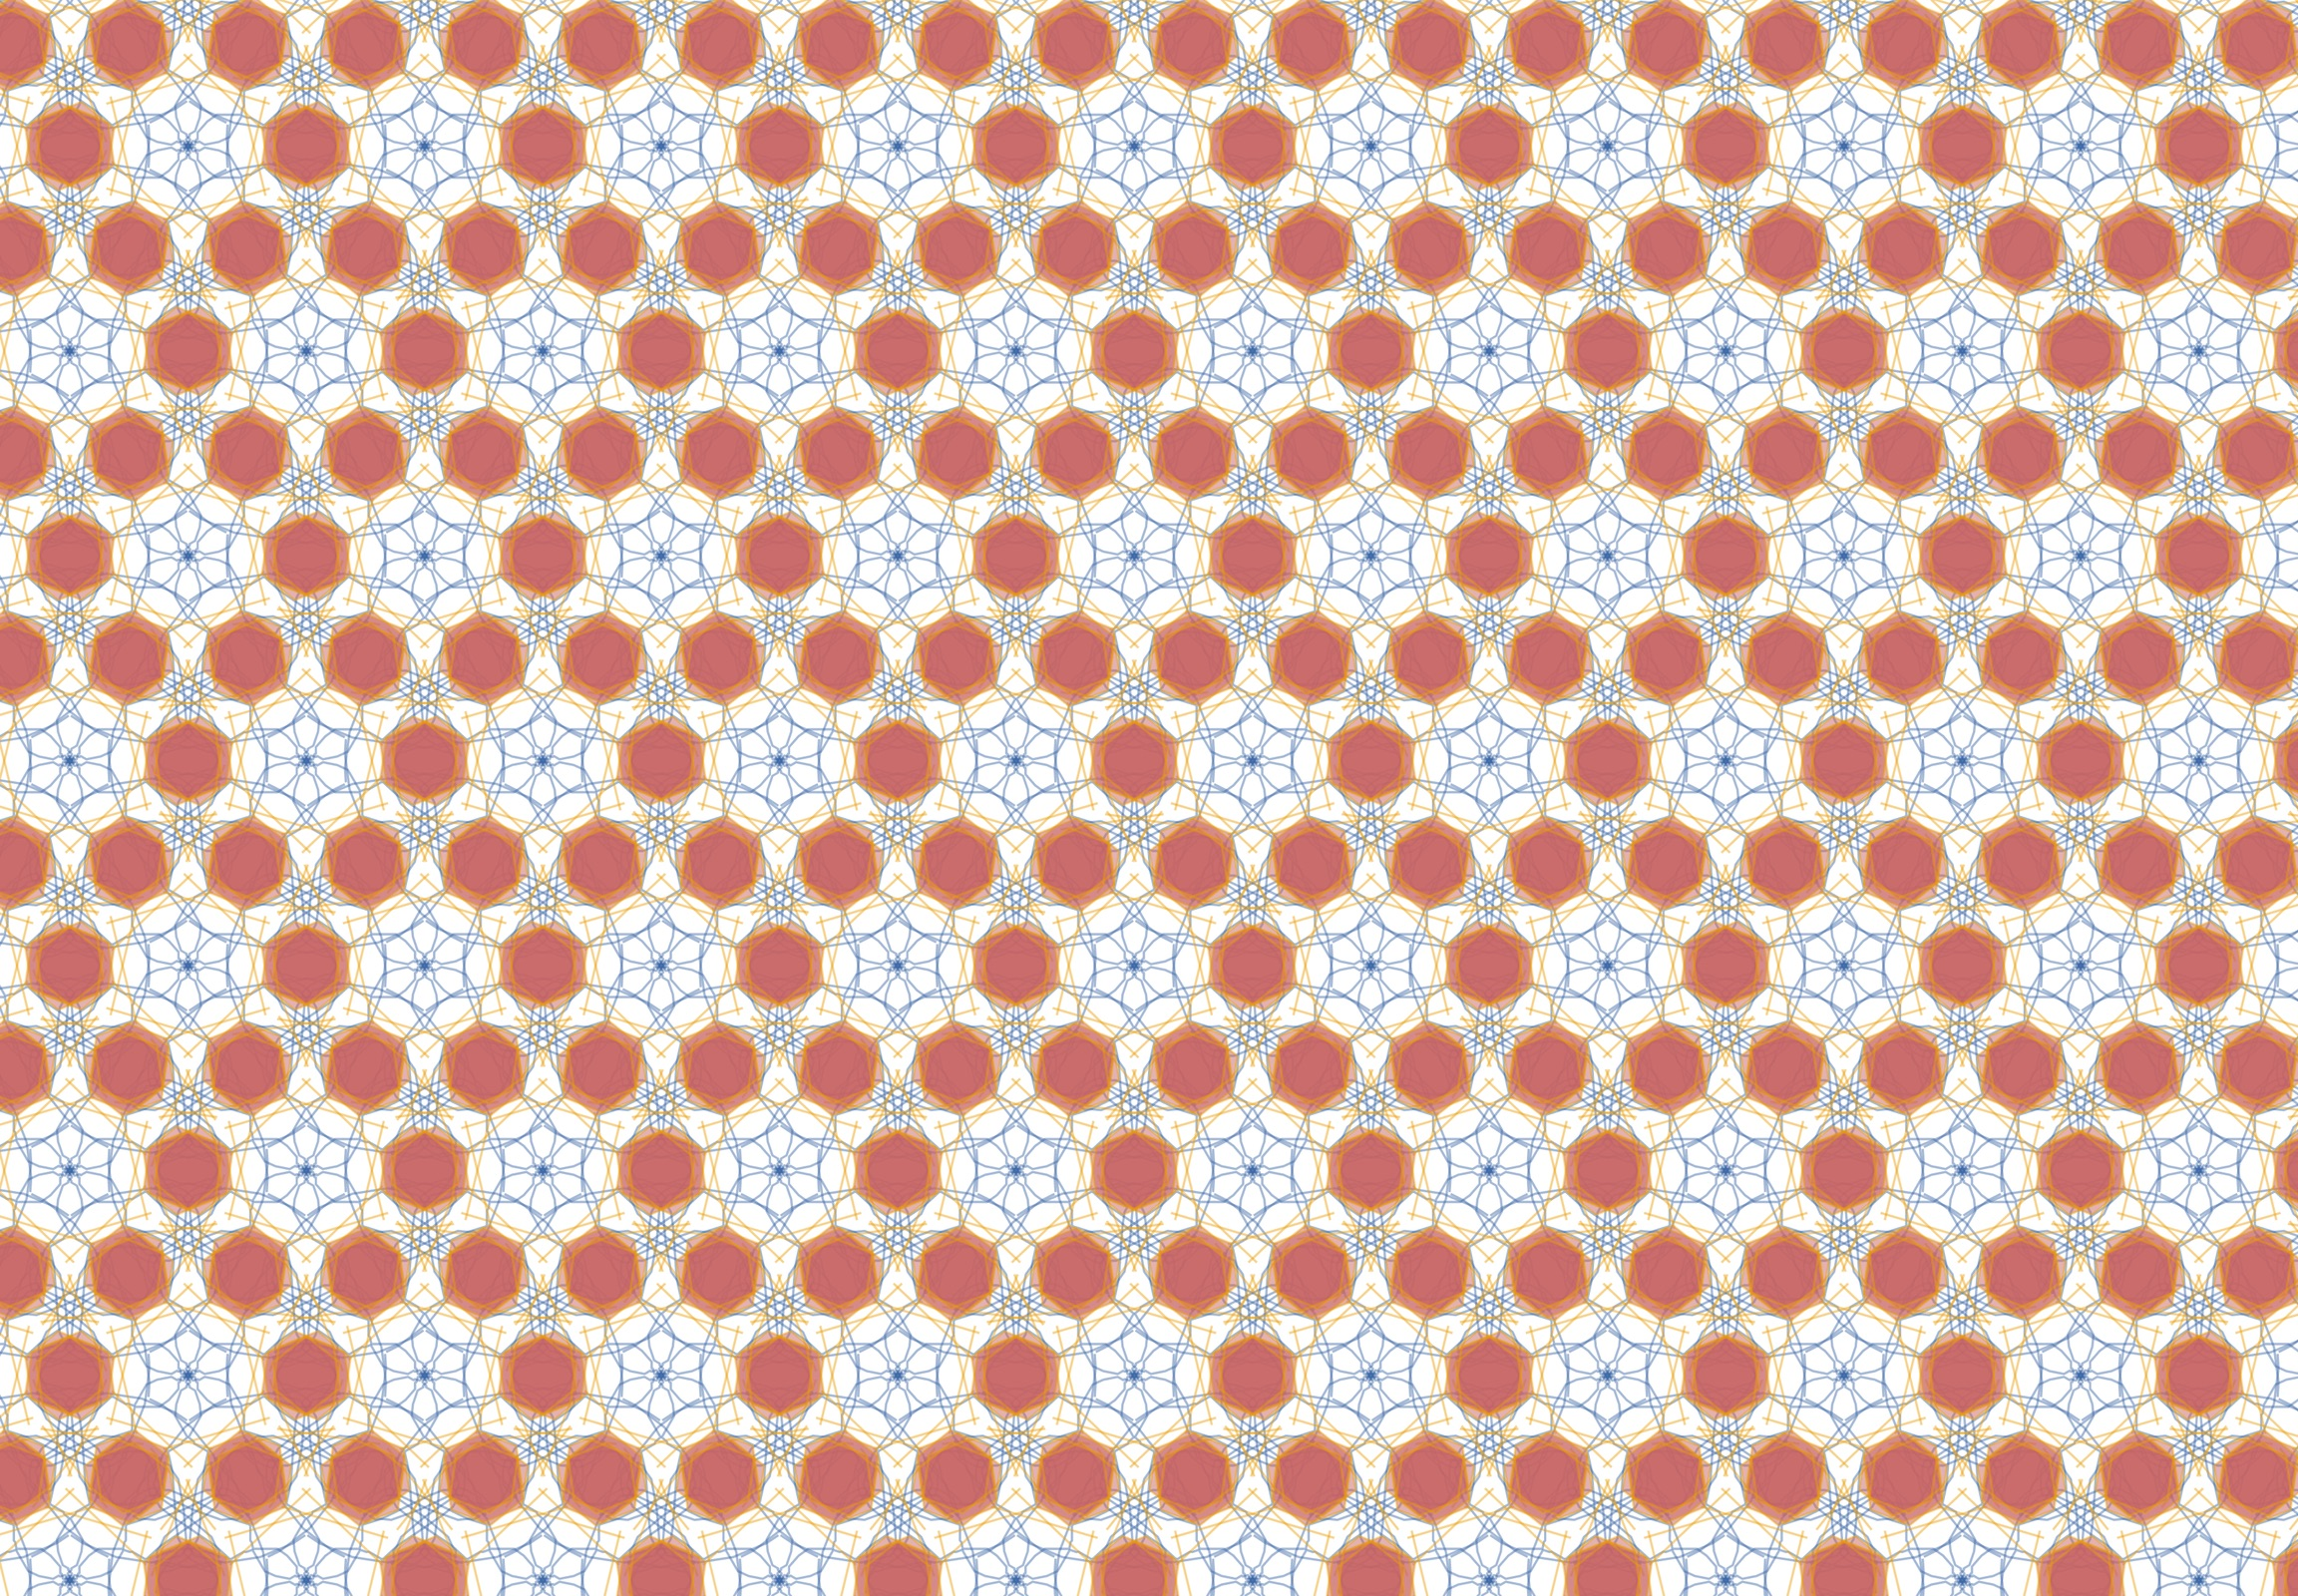 geometric tessellation in blue, yellow and red